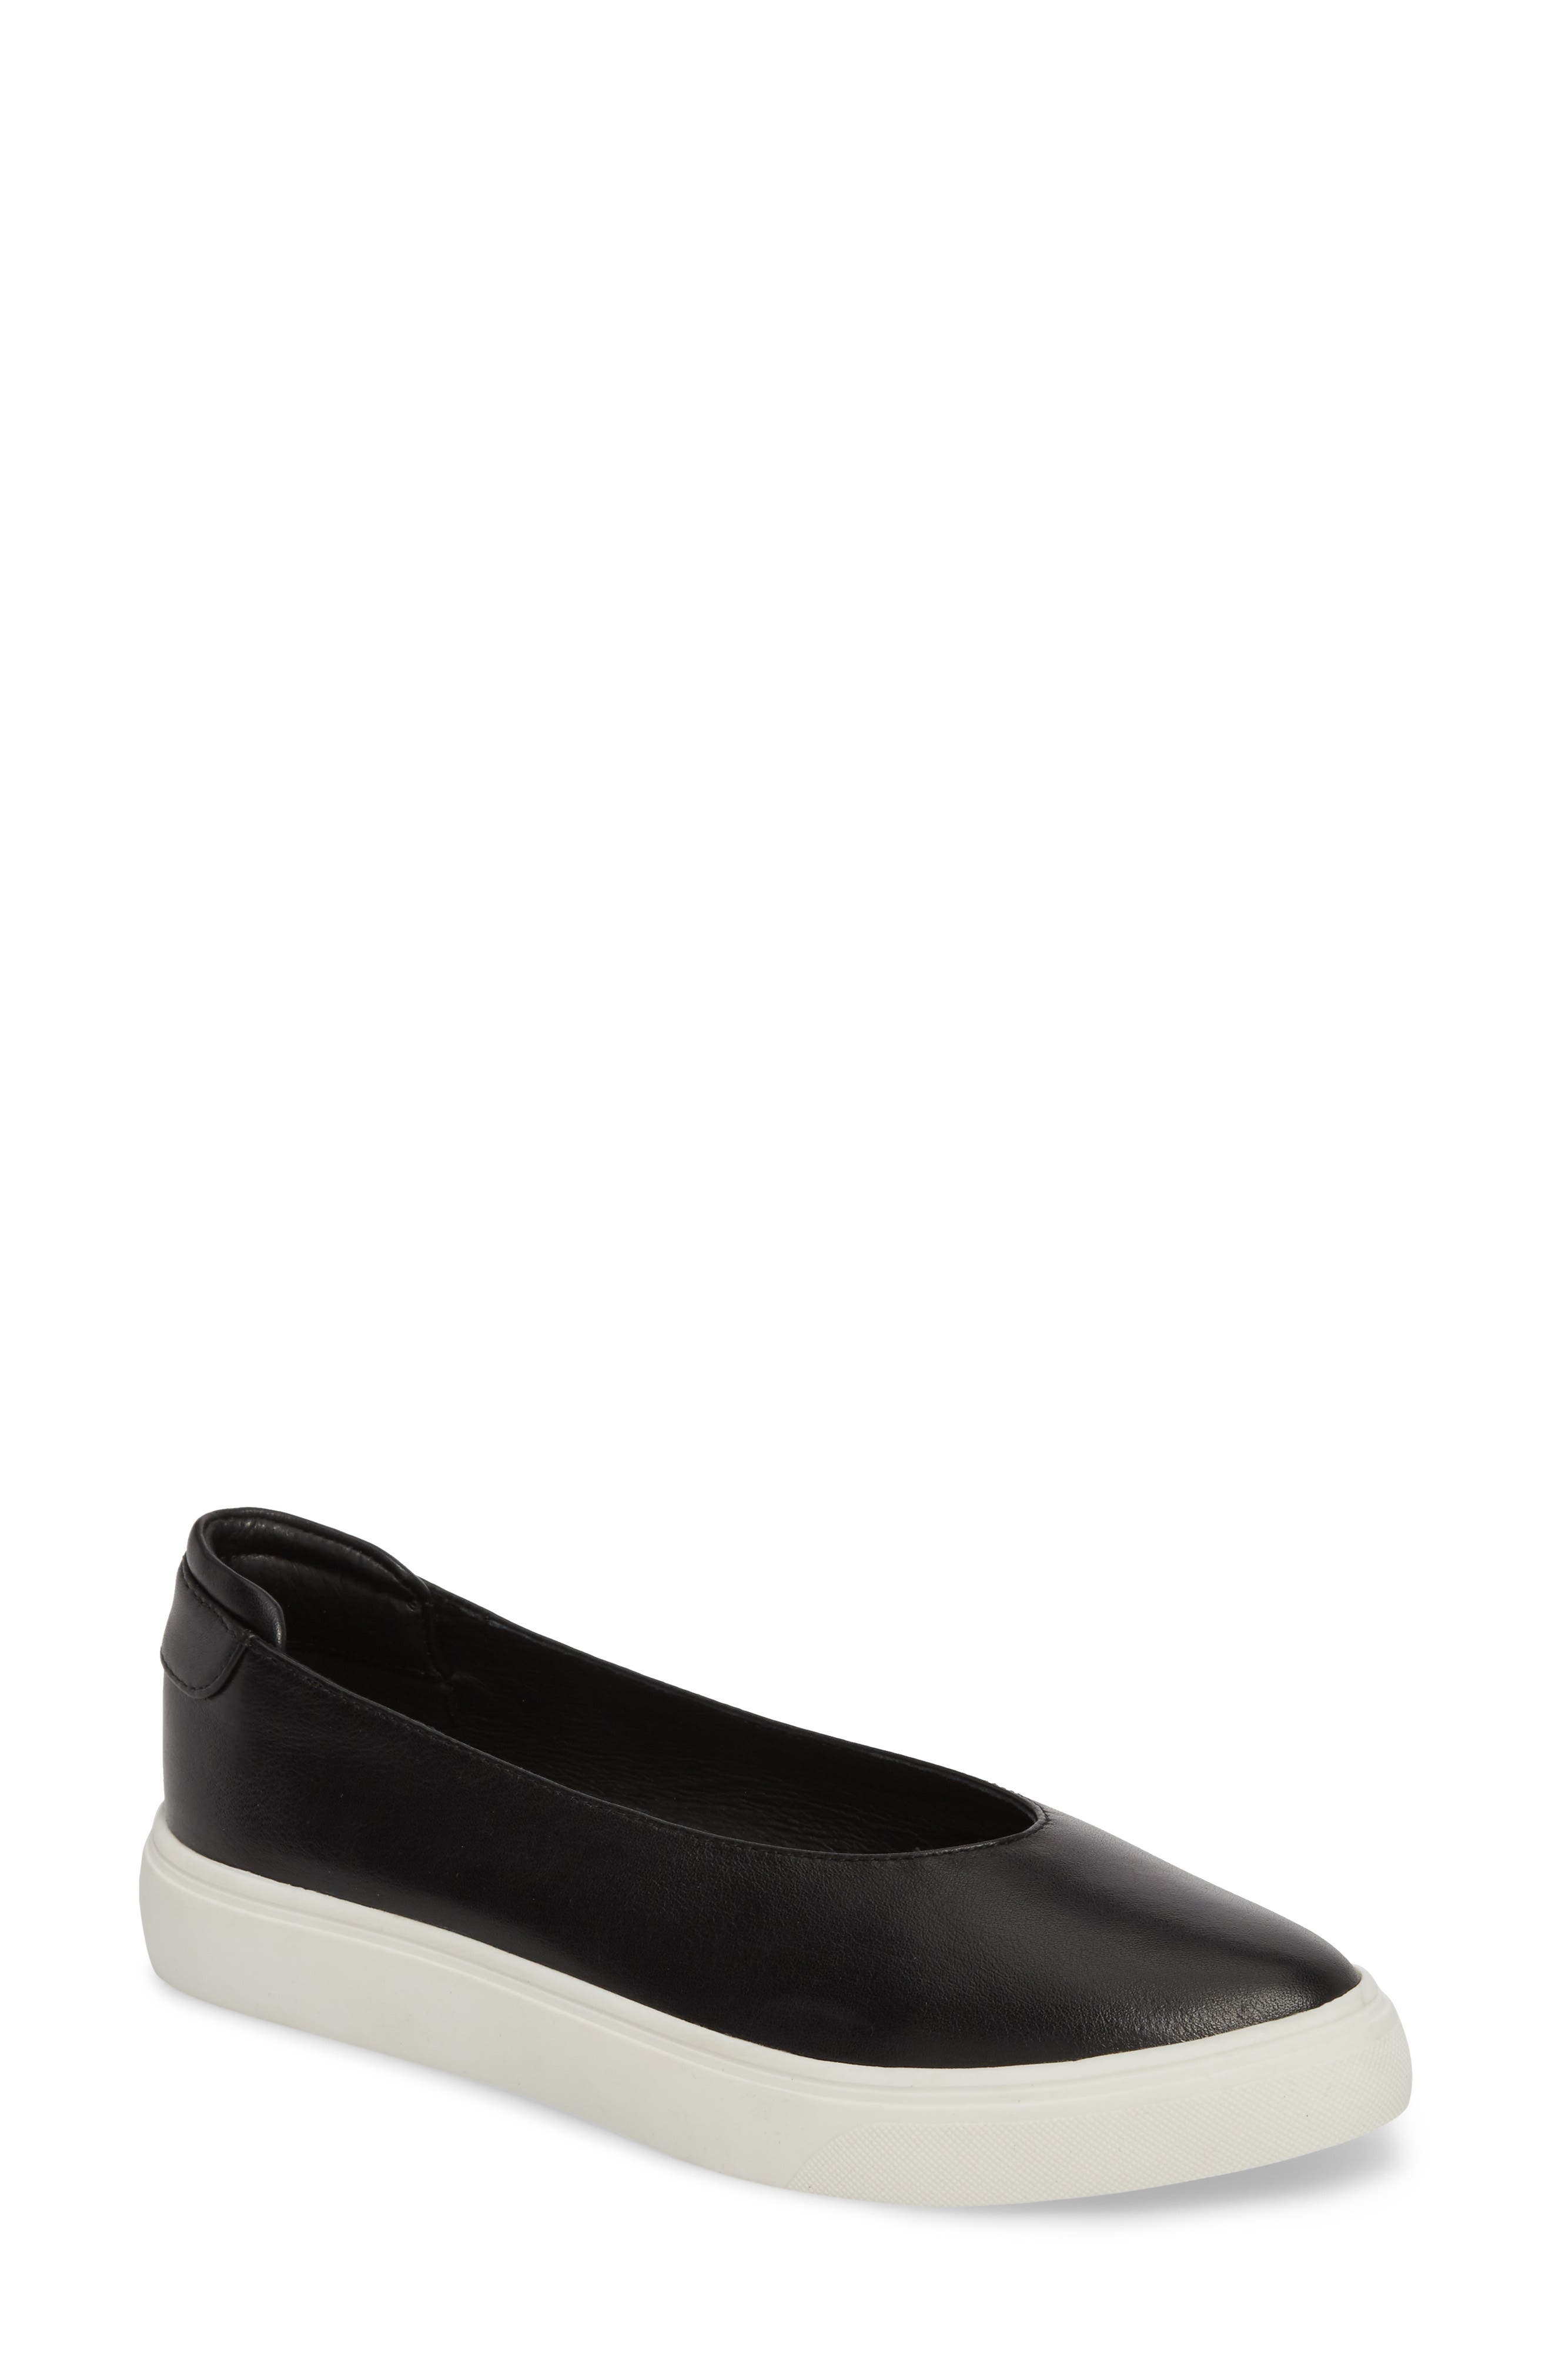 JSLIDES Gwen Leather Platform Sneakers in Black